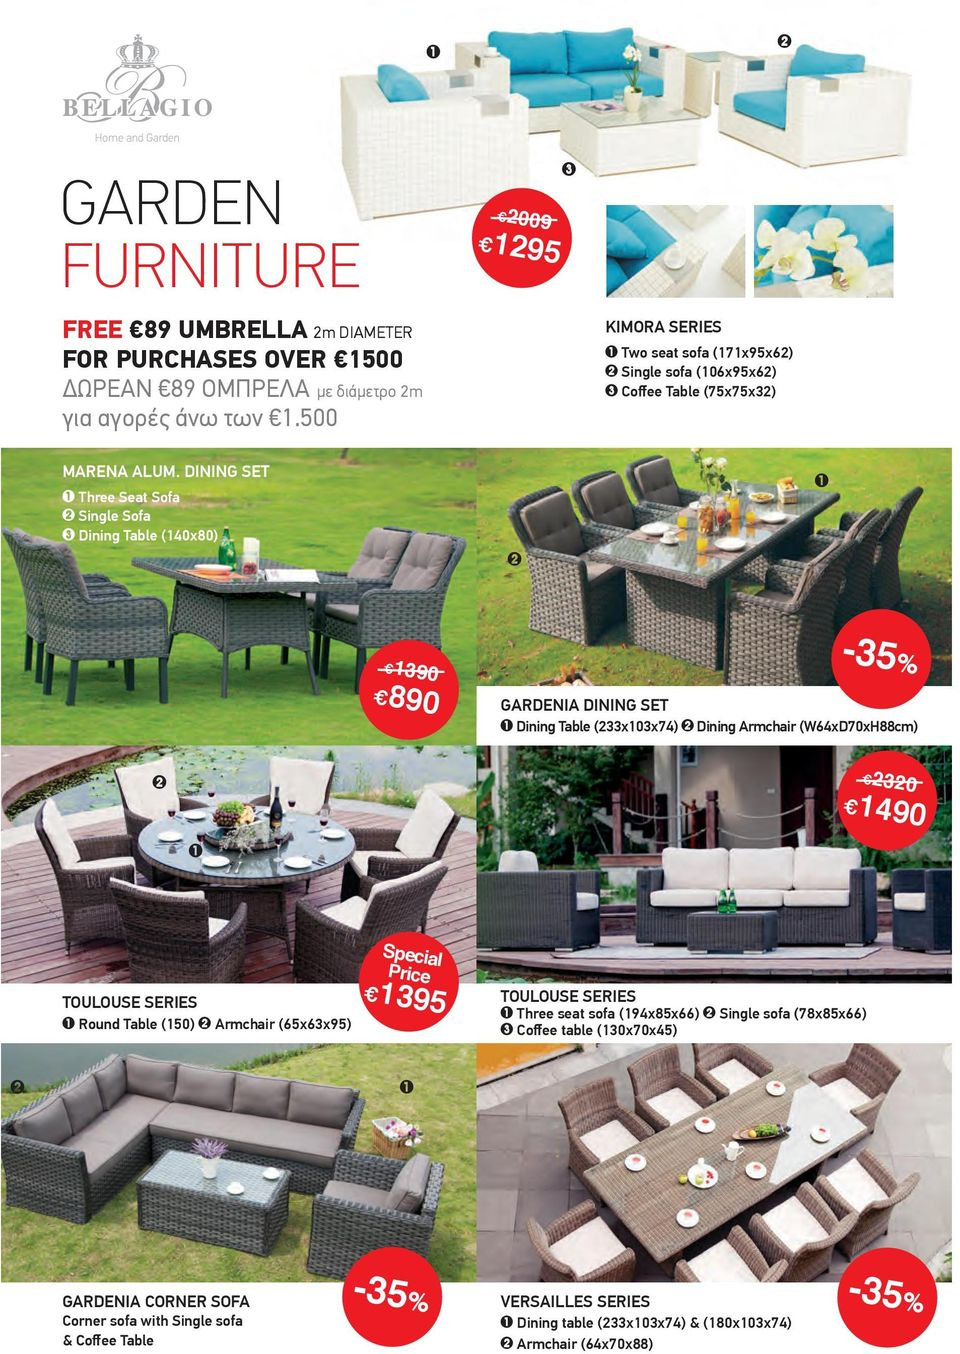 DINING SET Three Seat Sofa Single Sofa Dining Table (40x80) 90-5% 890 0 GARDENIA DINING SET Dining Table (x0x74) Dining Armchair (W64xD70xH88cm) 490 TOULOUSE SERIES